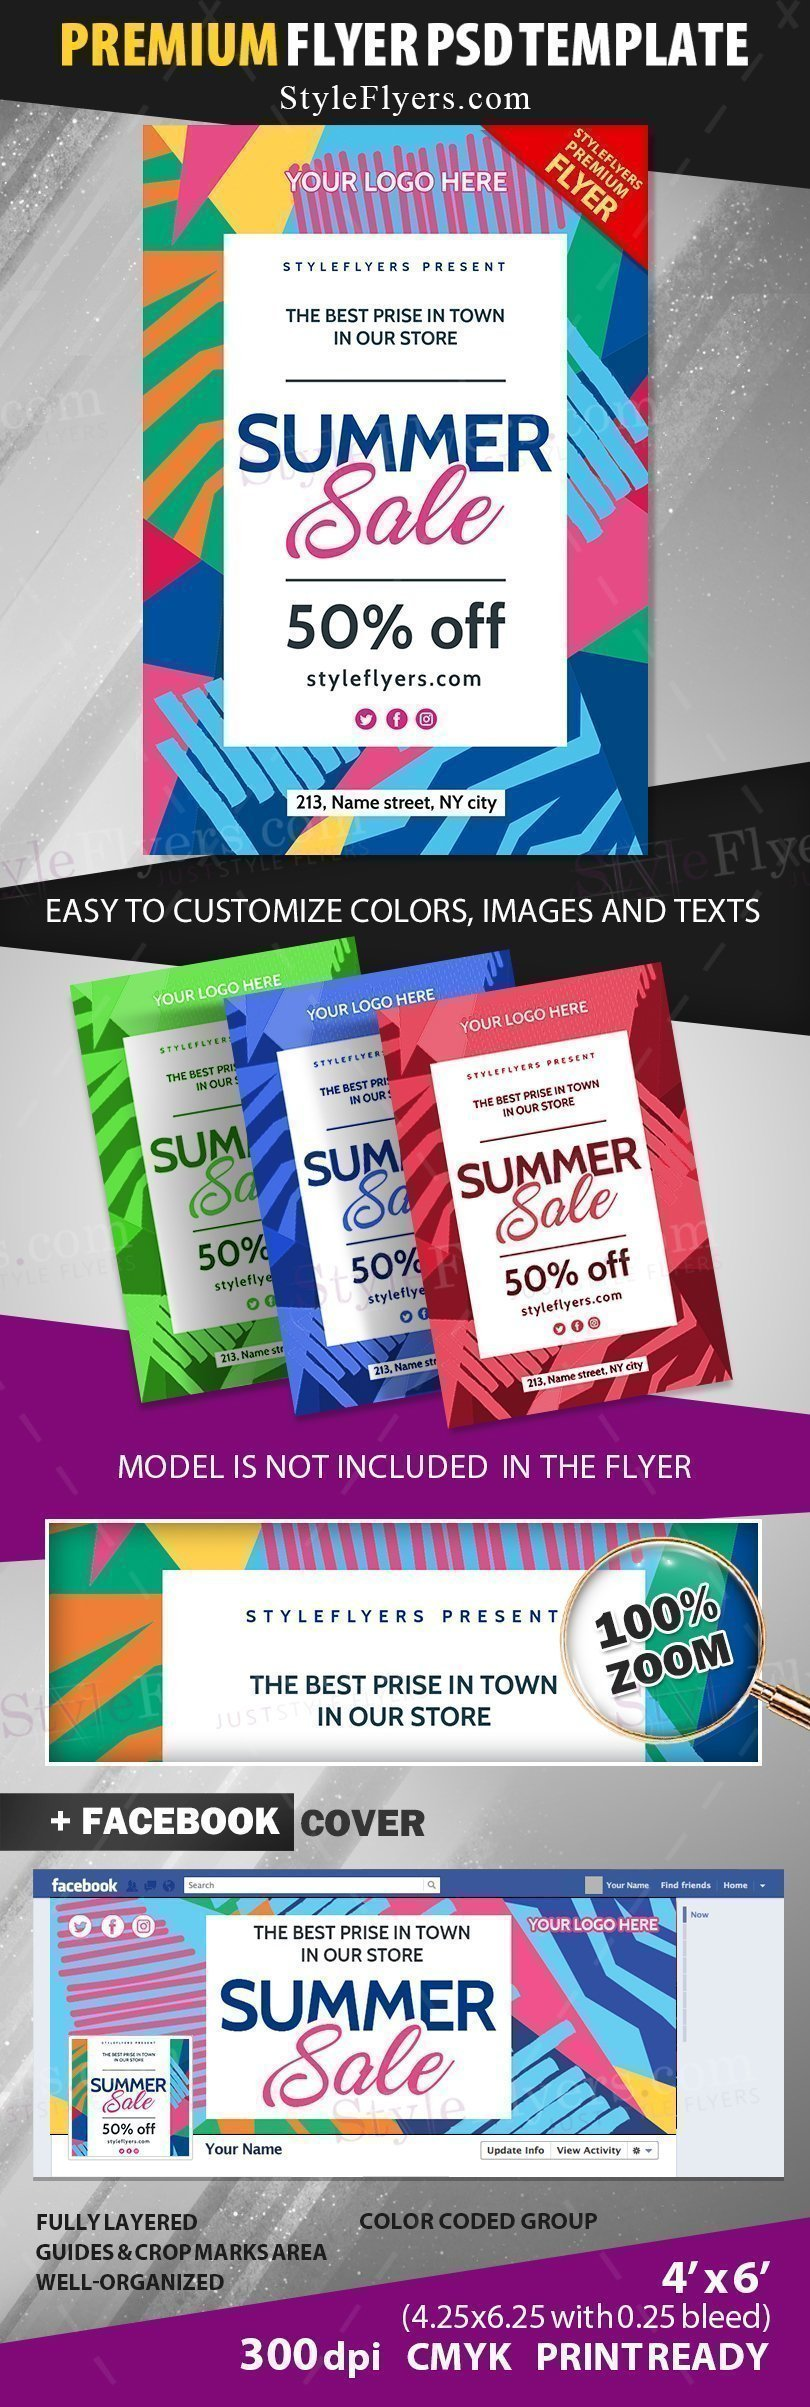 preview_Summer Sale_psd_flyer